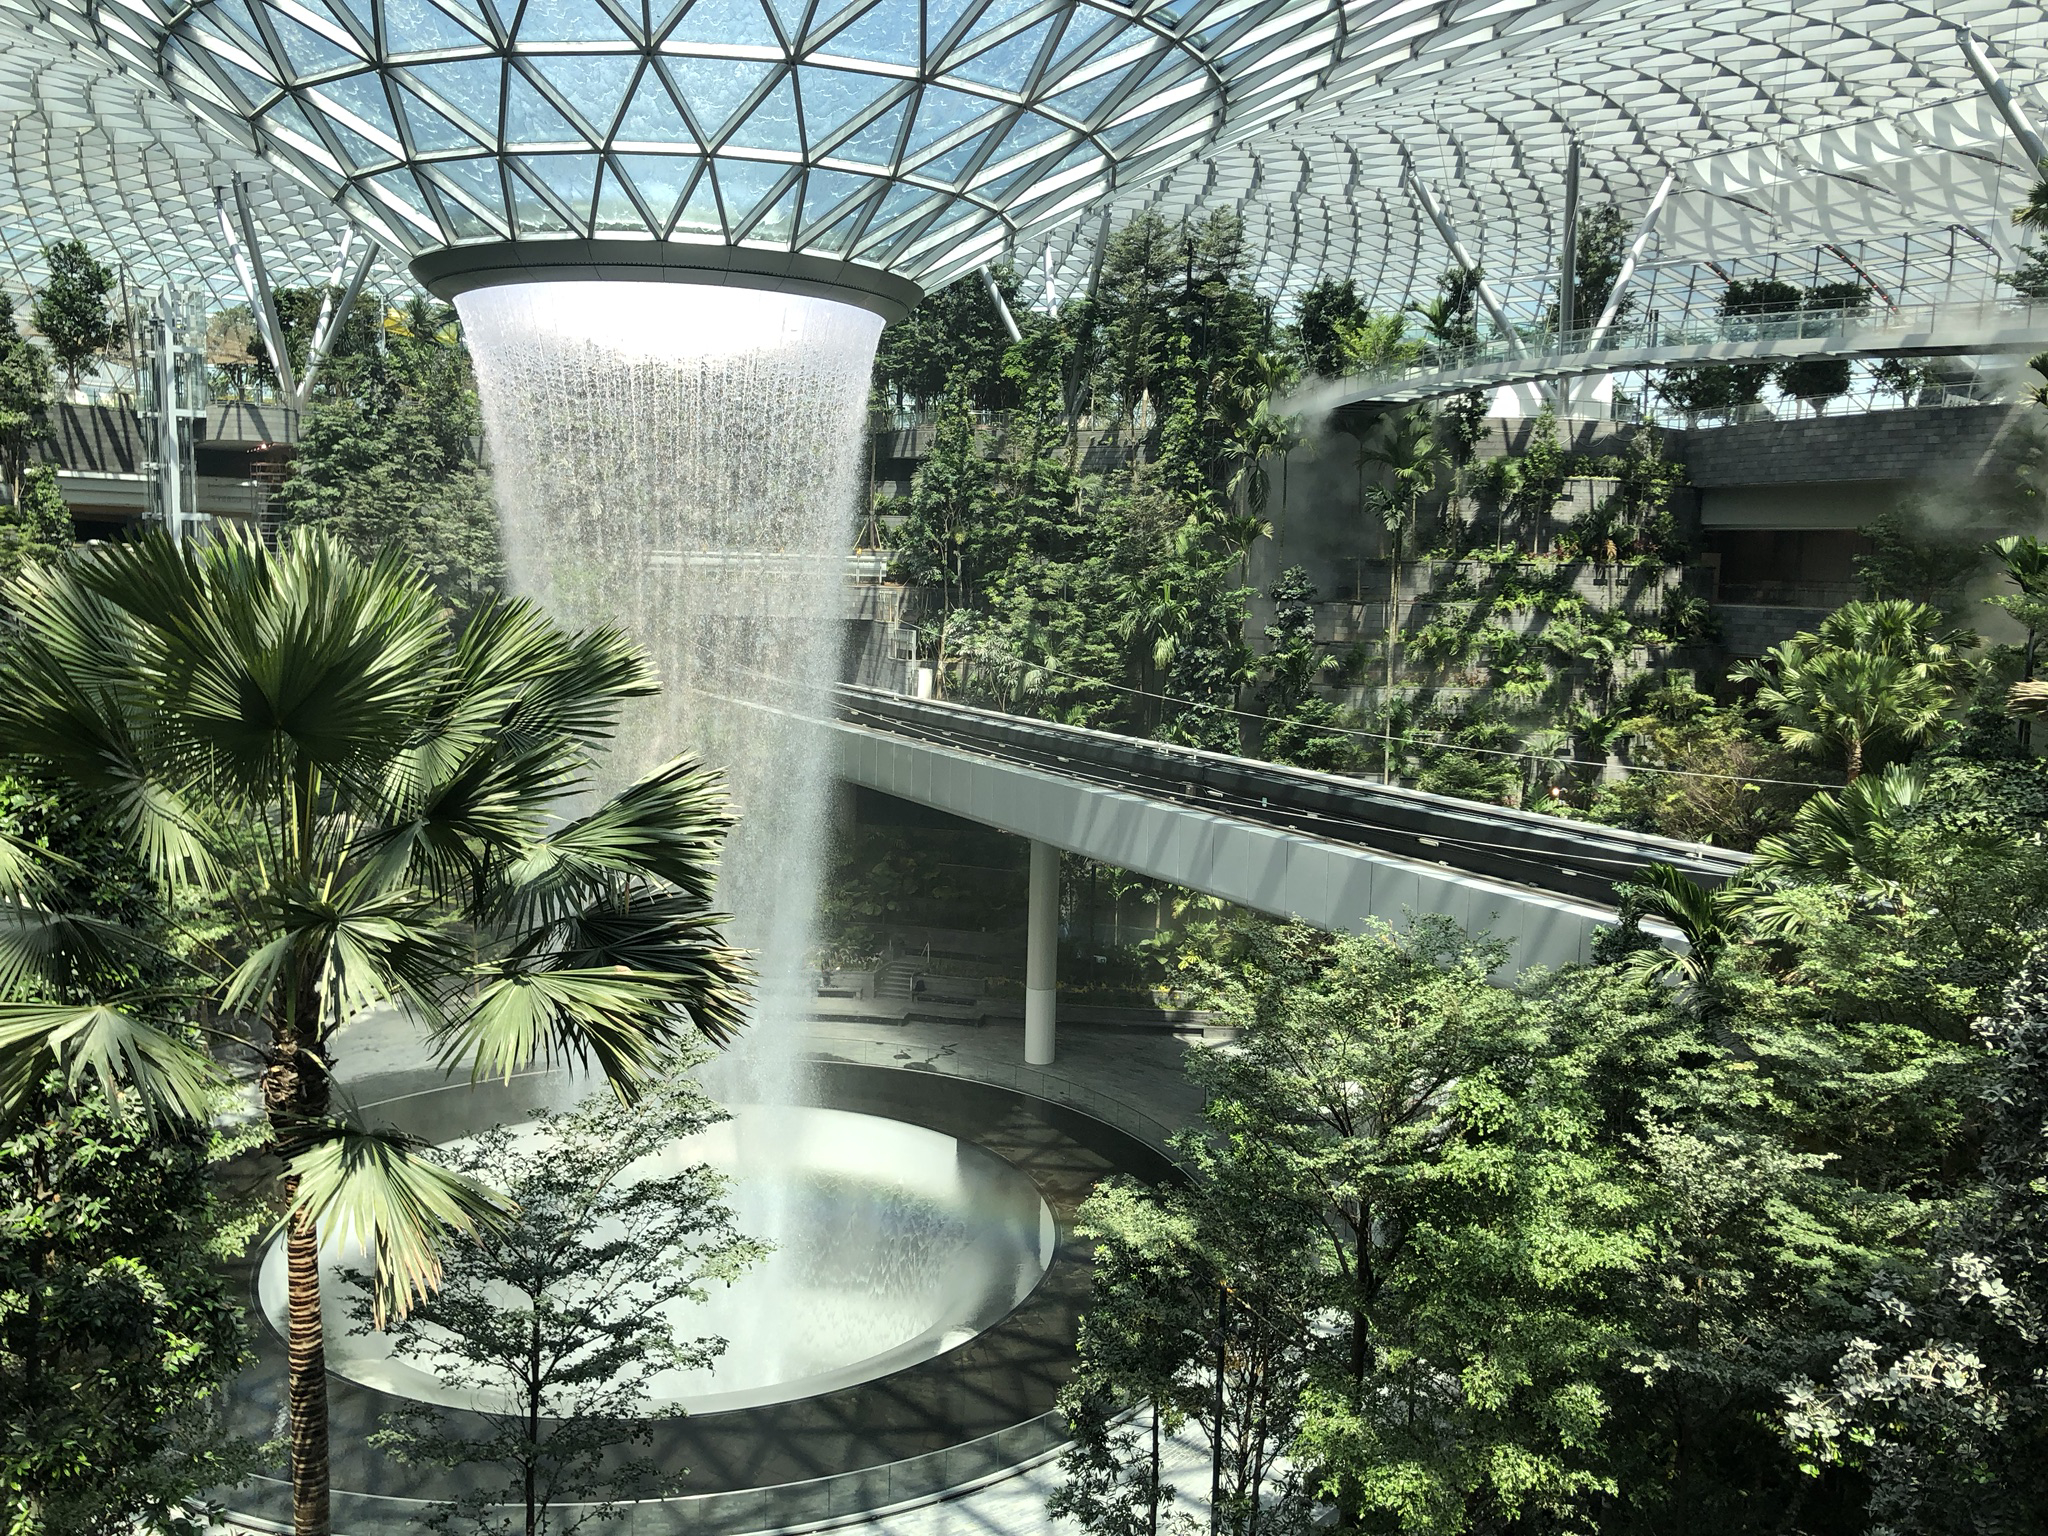 The majestic 40-metre high Rain Vortex, the world's tallest indoor waterfall, will take centerstage in the Changi Jewel complex